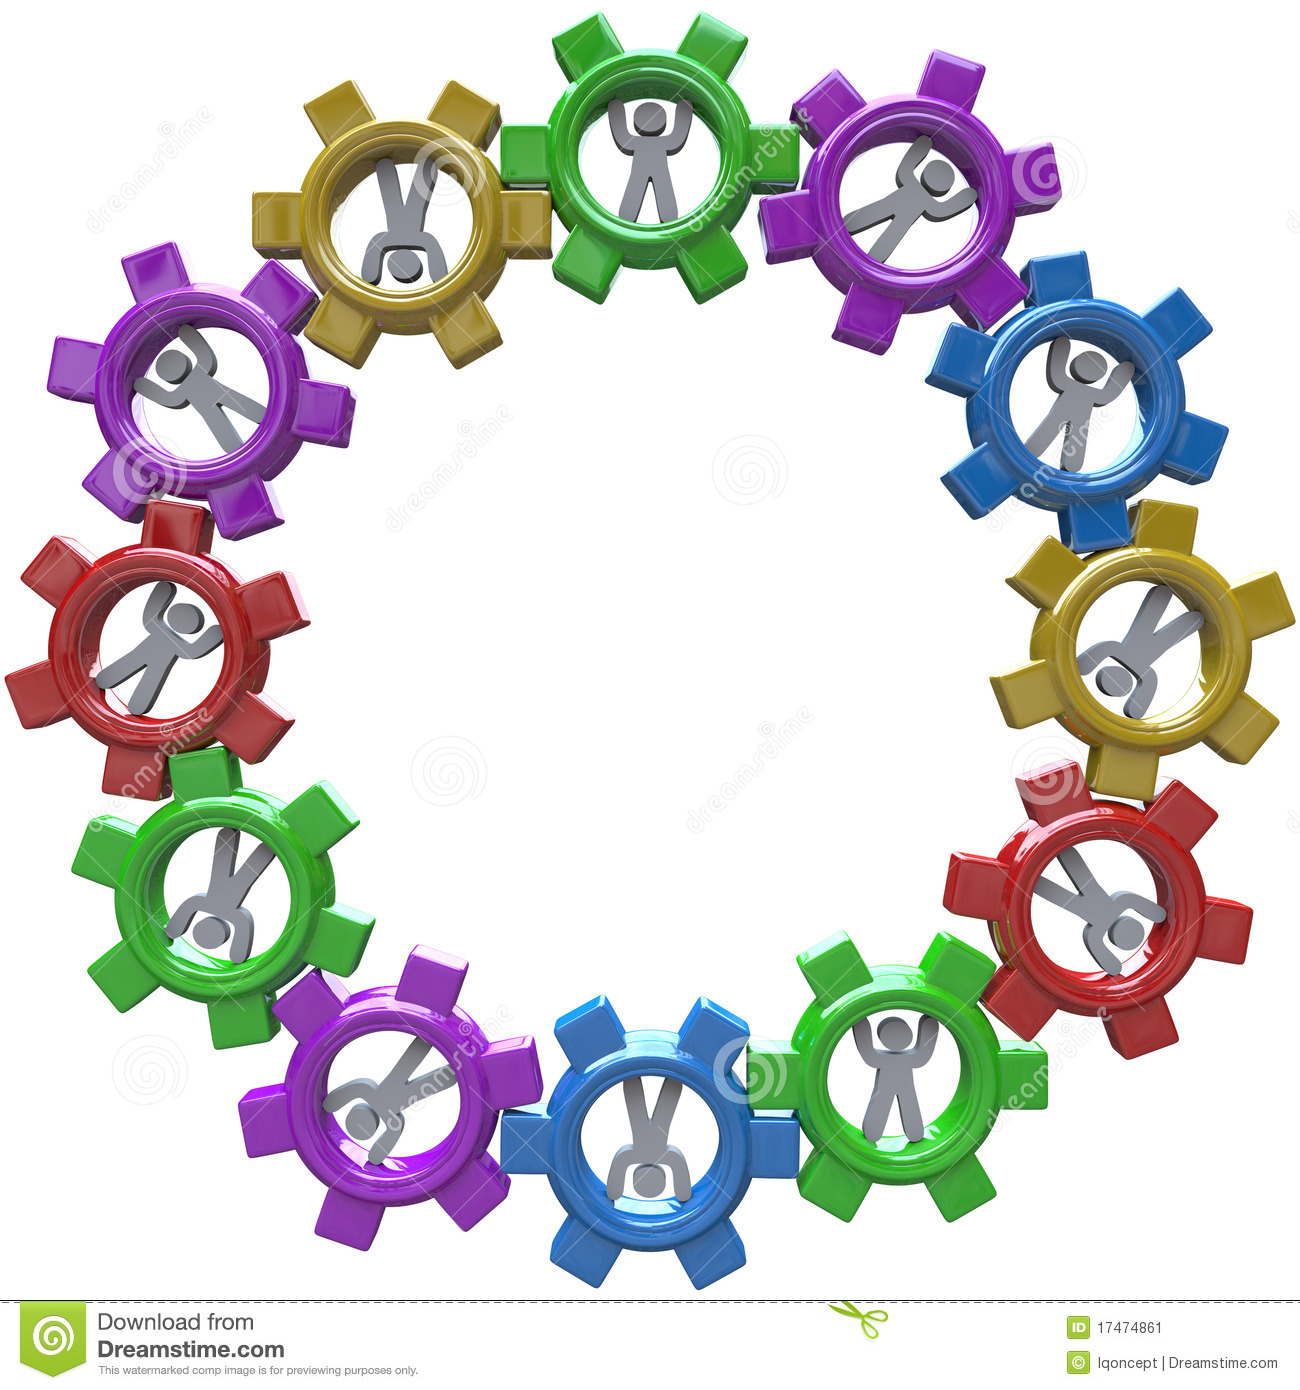 Synergize Clipart Synergy   Circle Of People Turning In Gears Stock